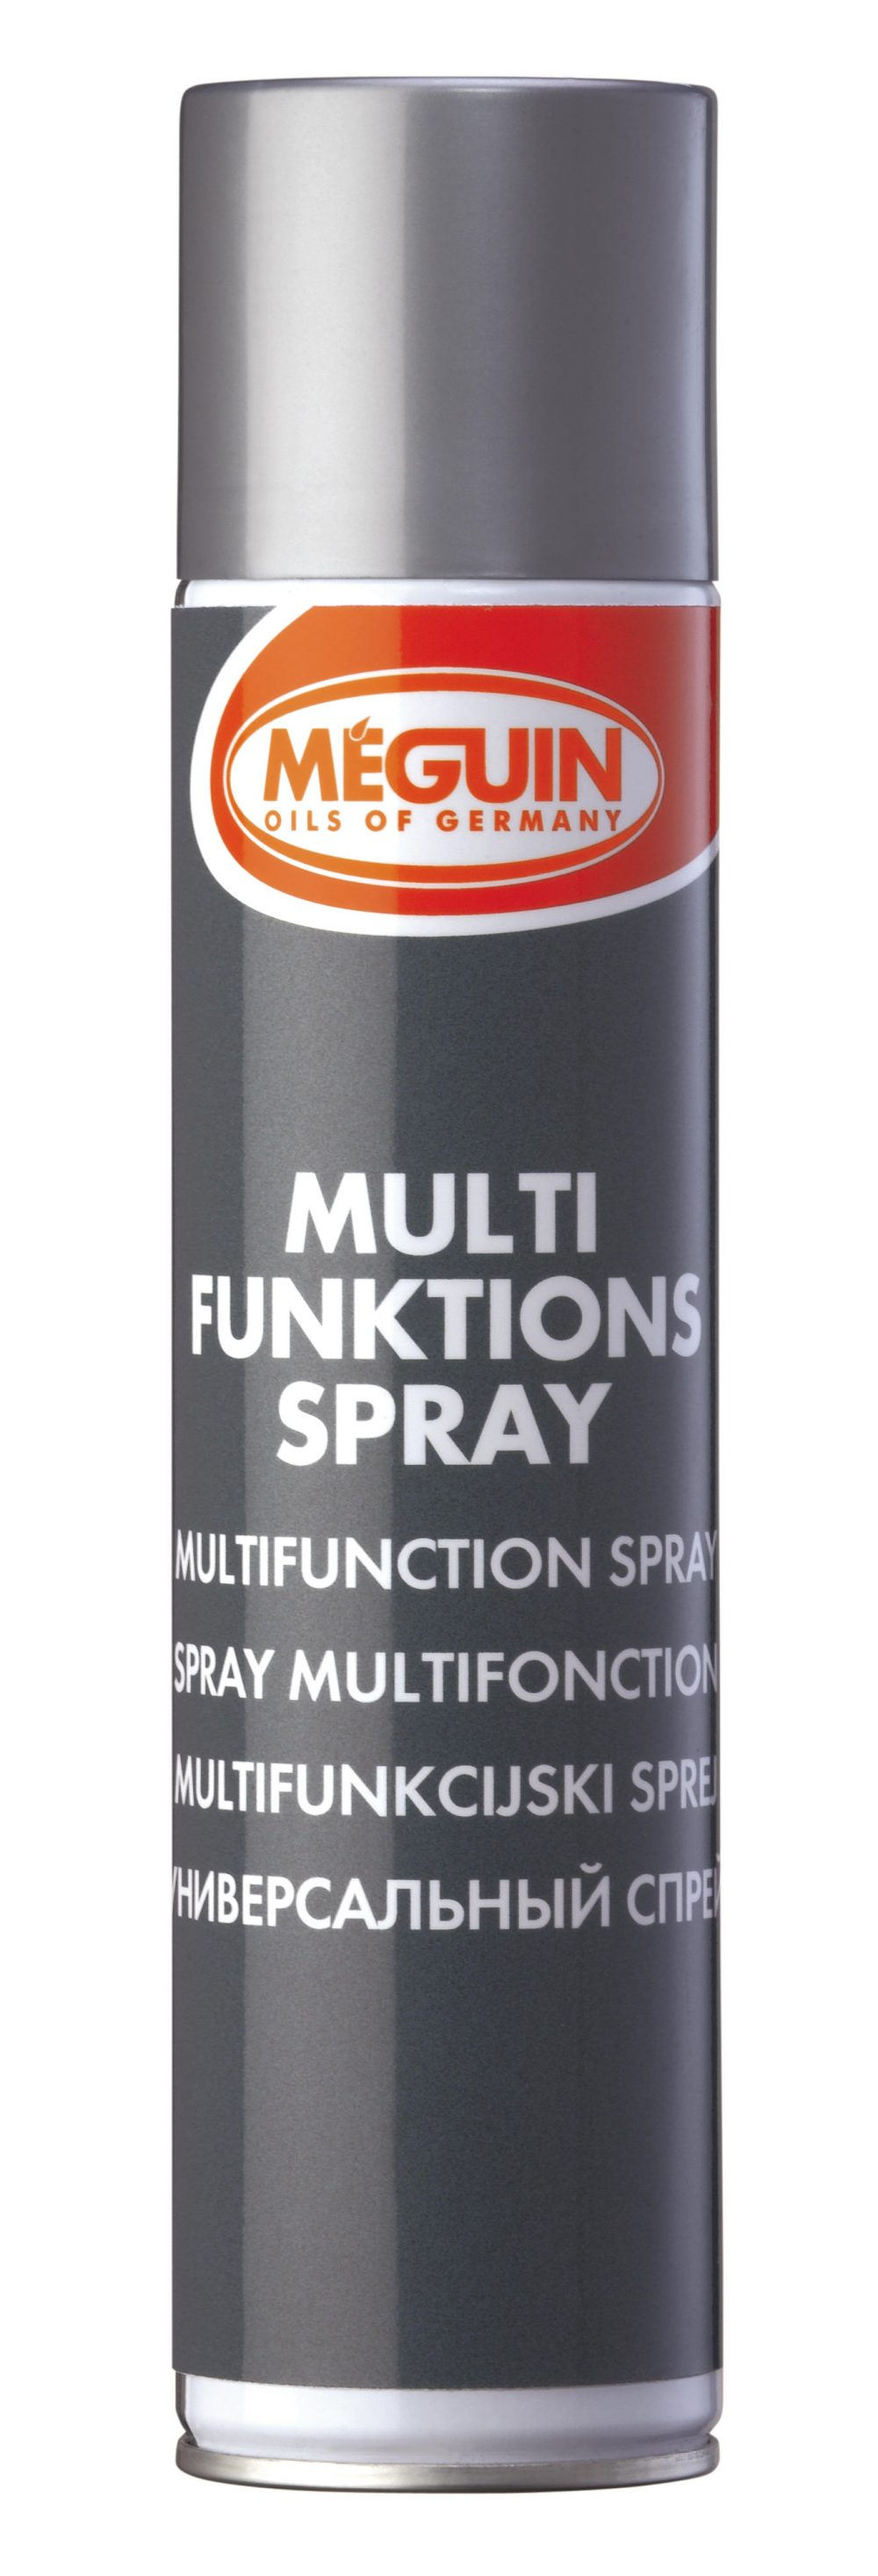 Multi Funktions SPRAY